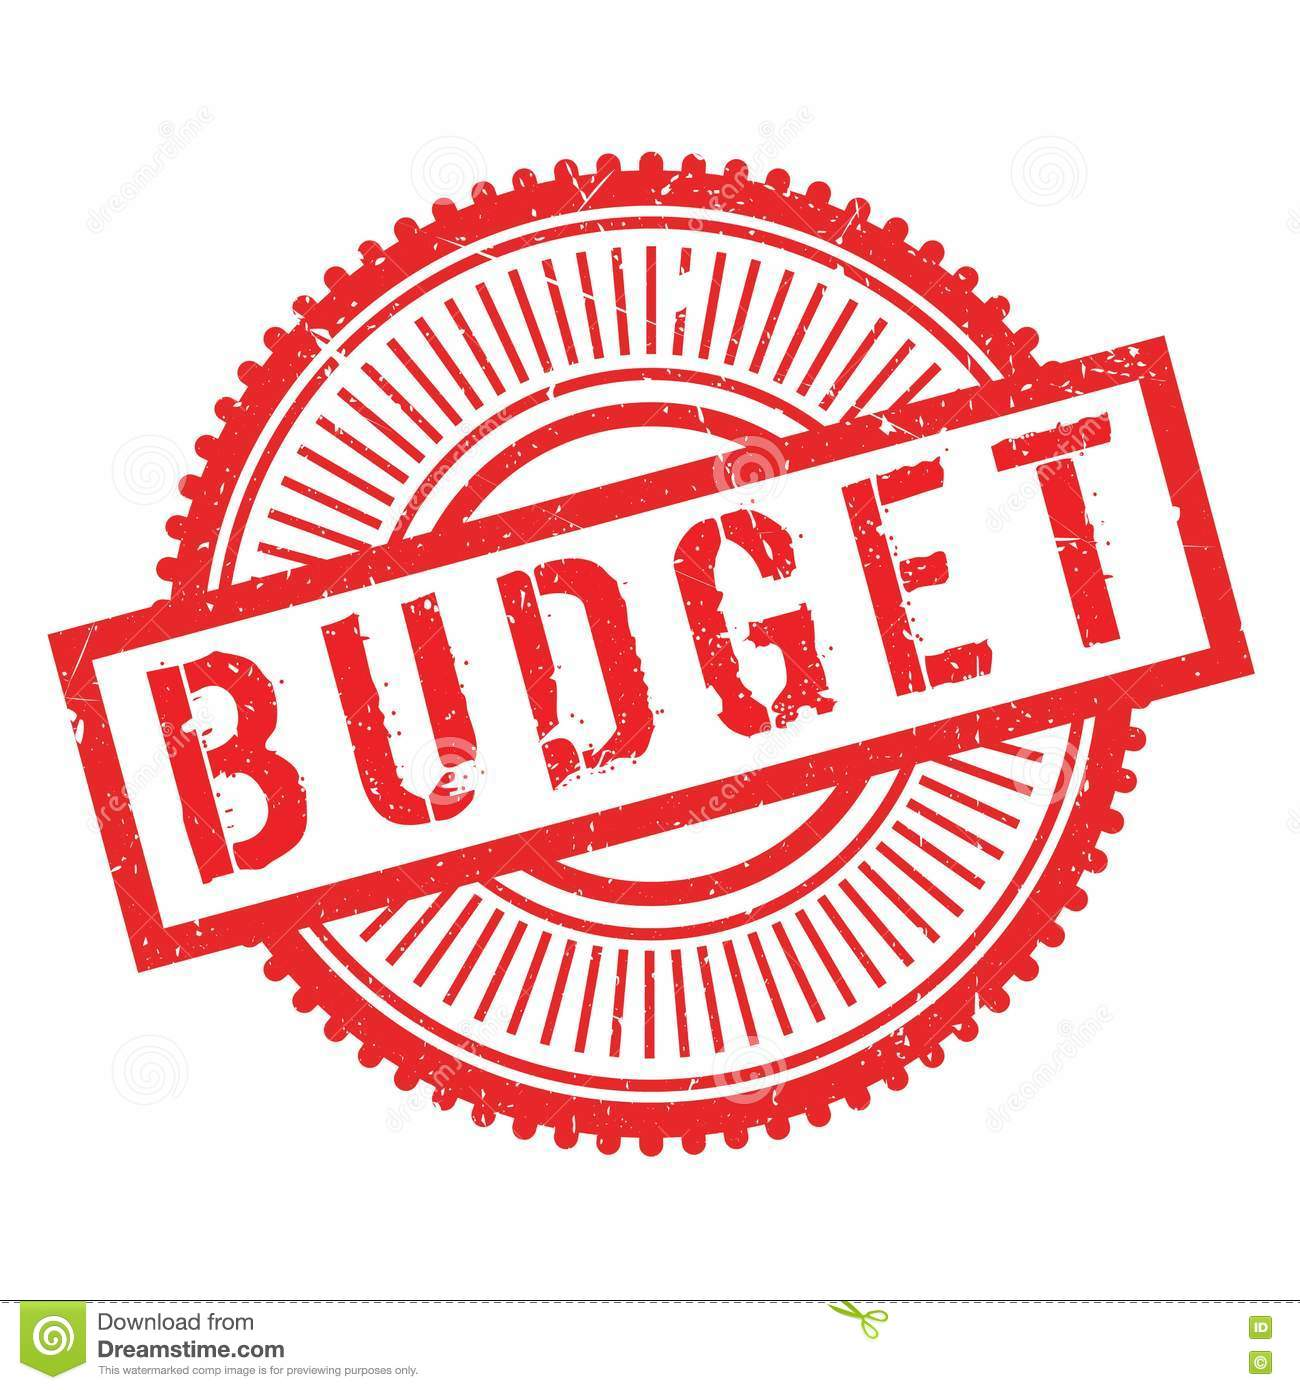 Image result for copyright free images of budget